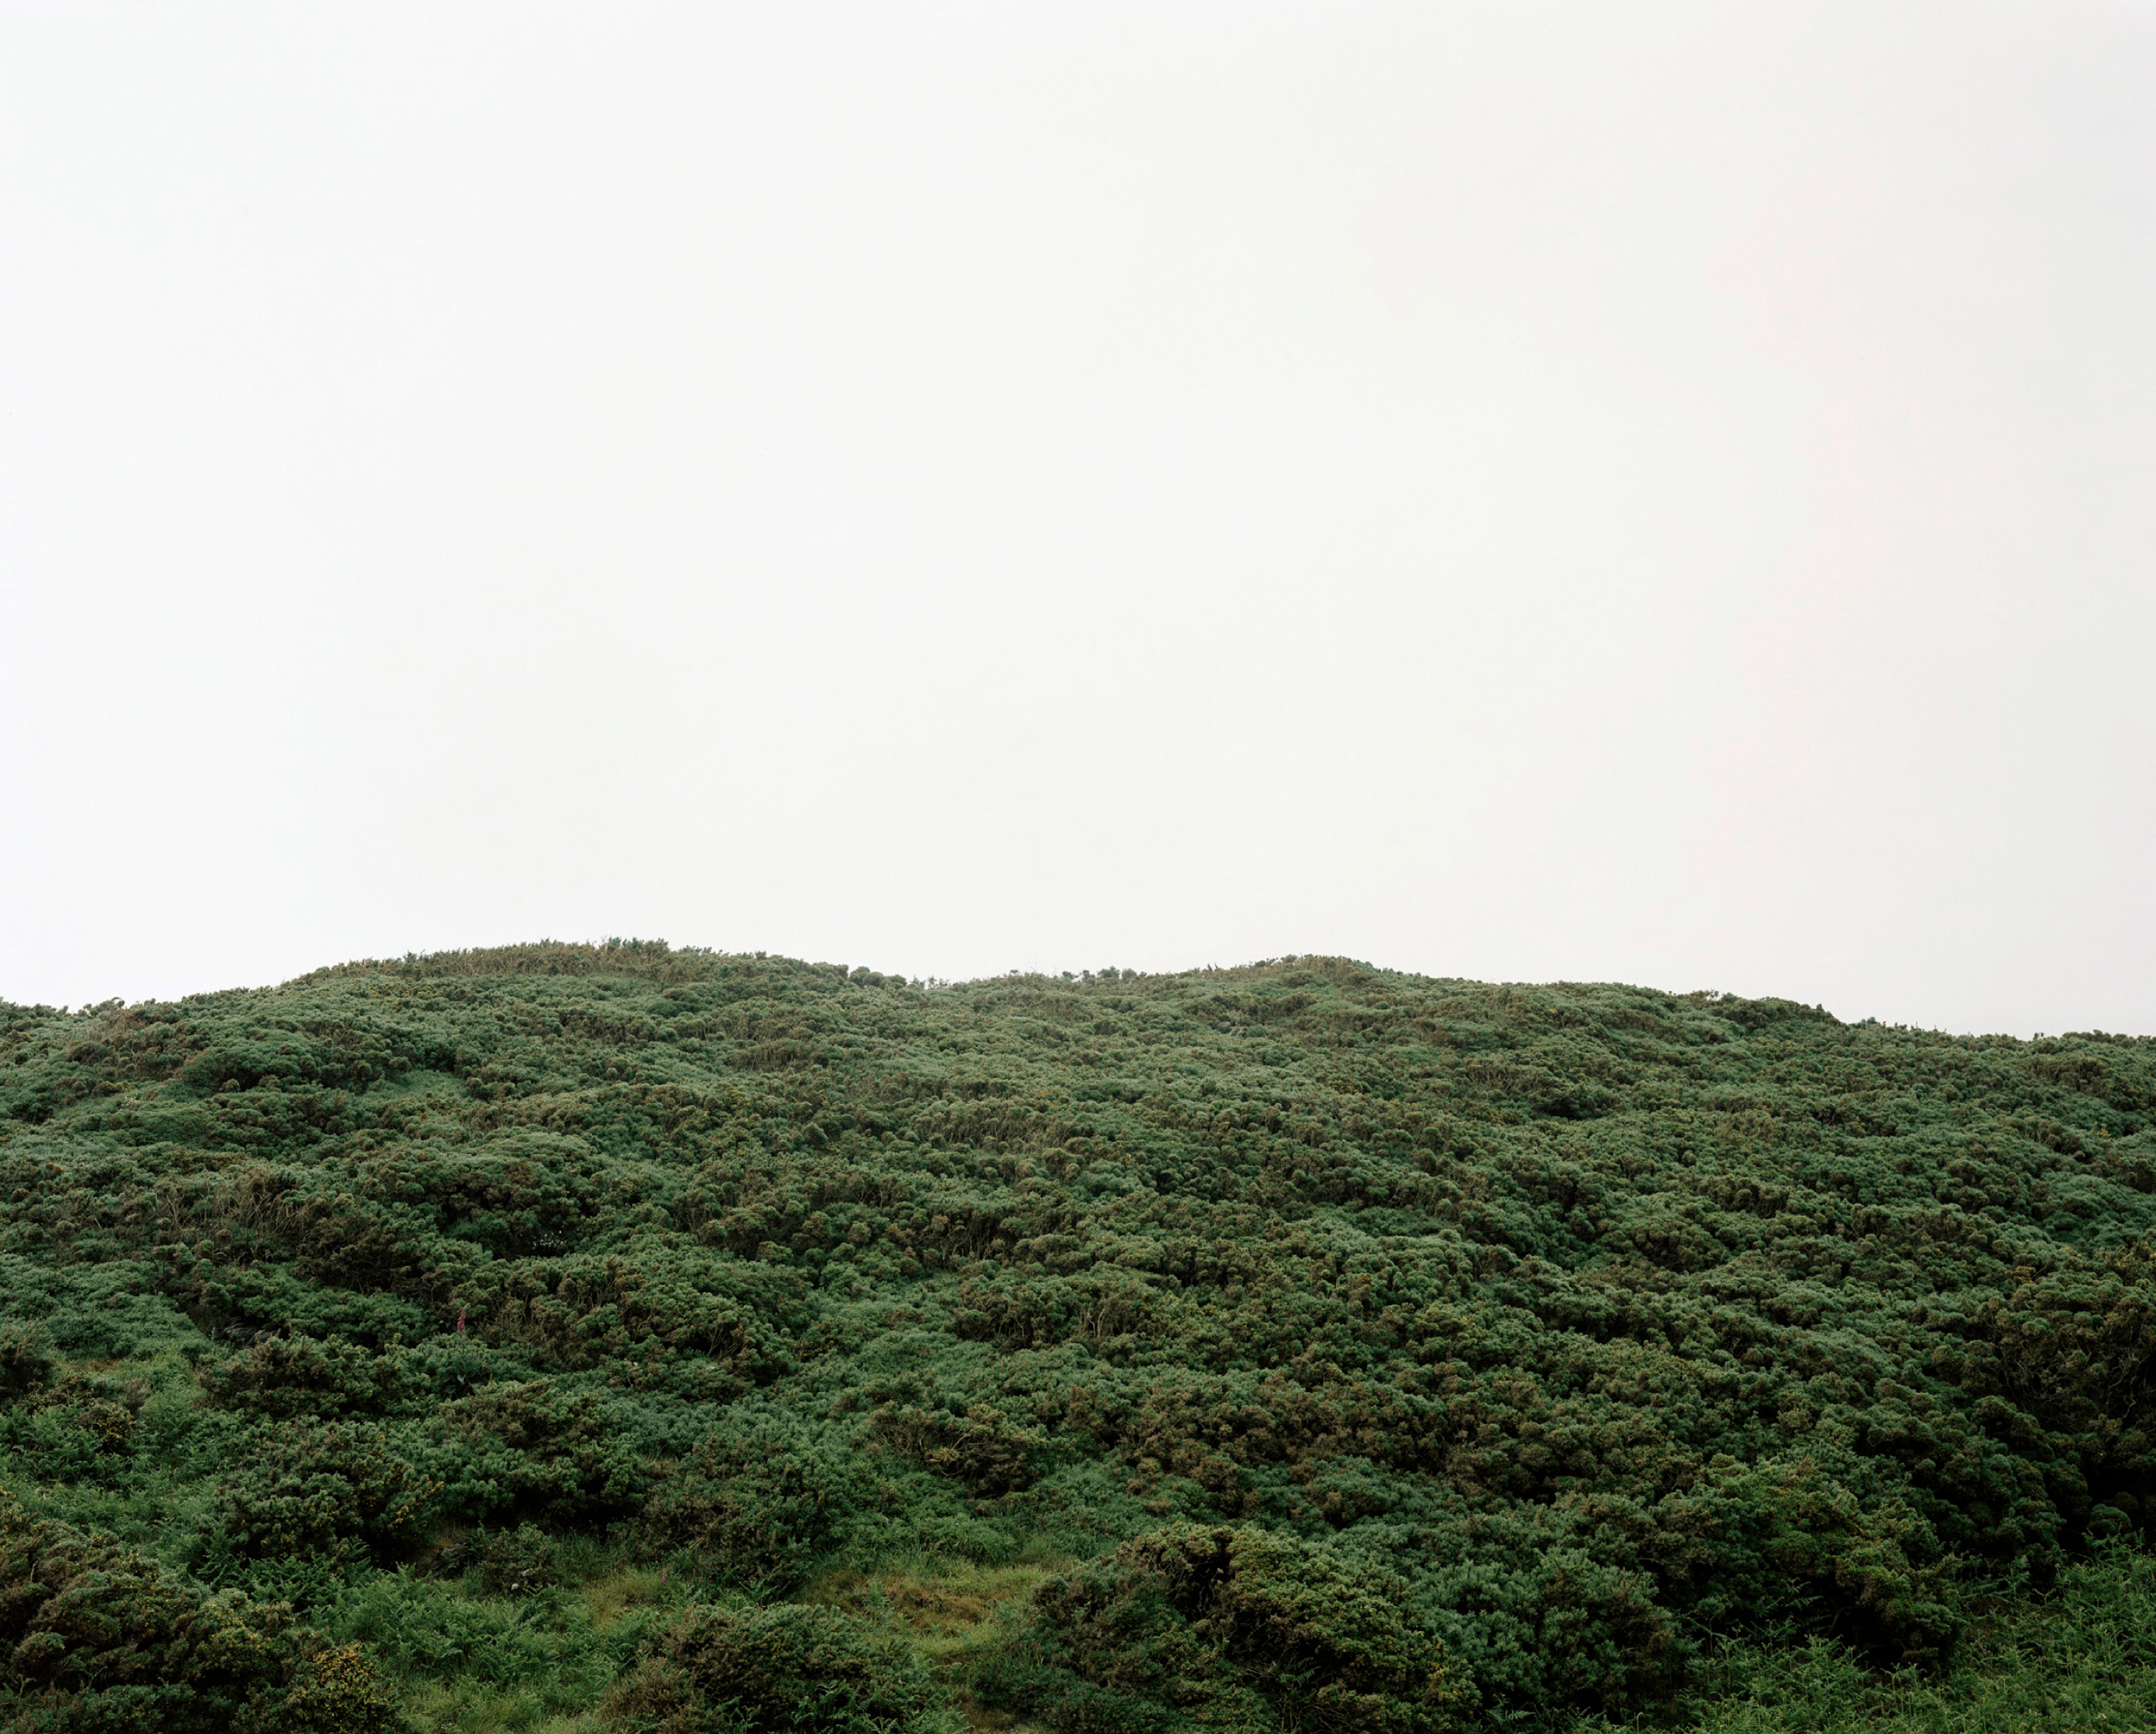 Photograph of a large area of gorse bushes